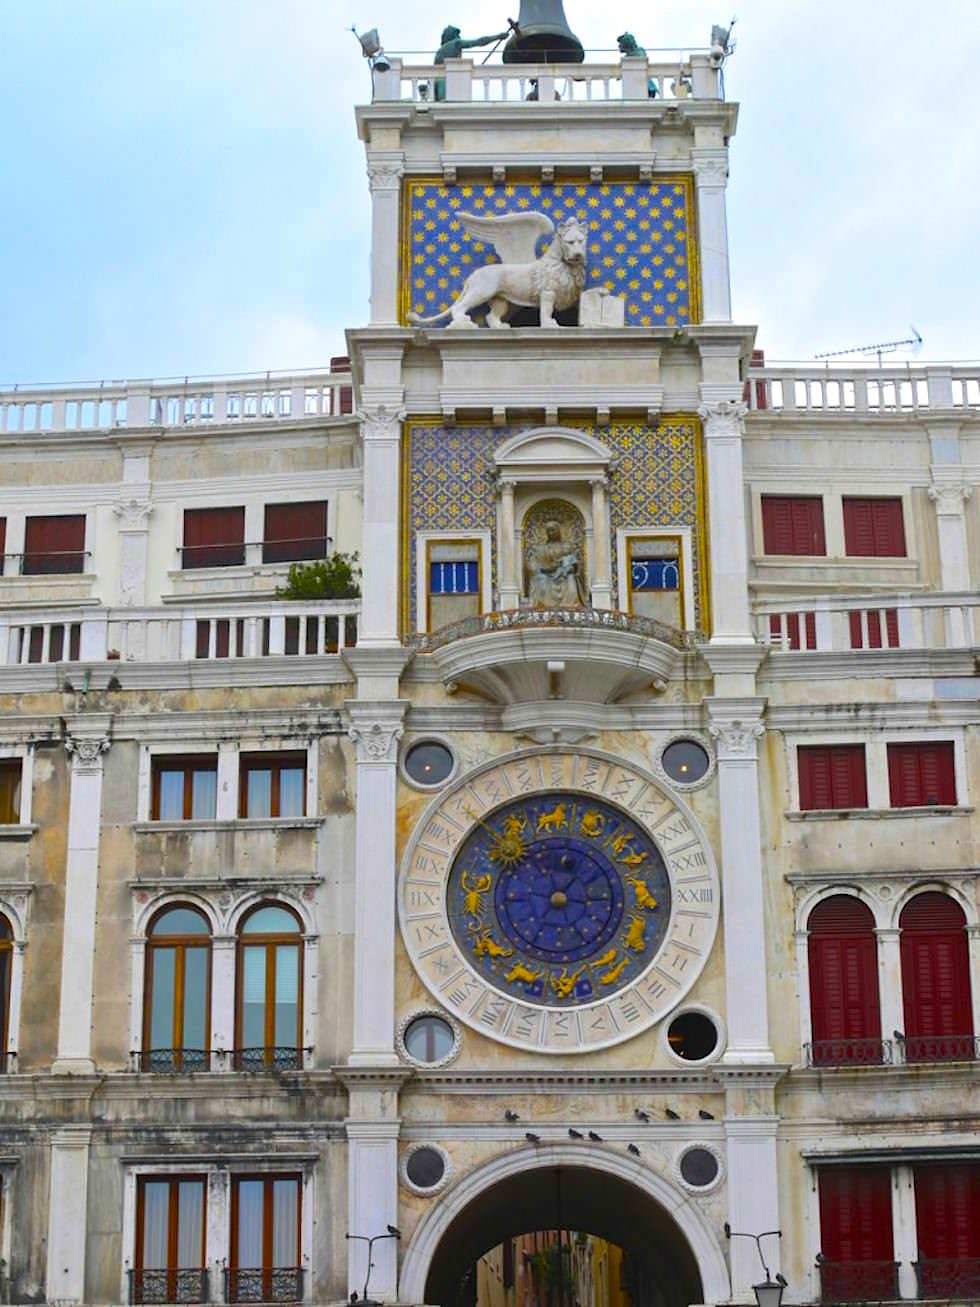 St Marks Clock Tower - Torre dell Orologio at Piazza San Marco in Venice Italy